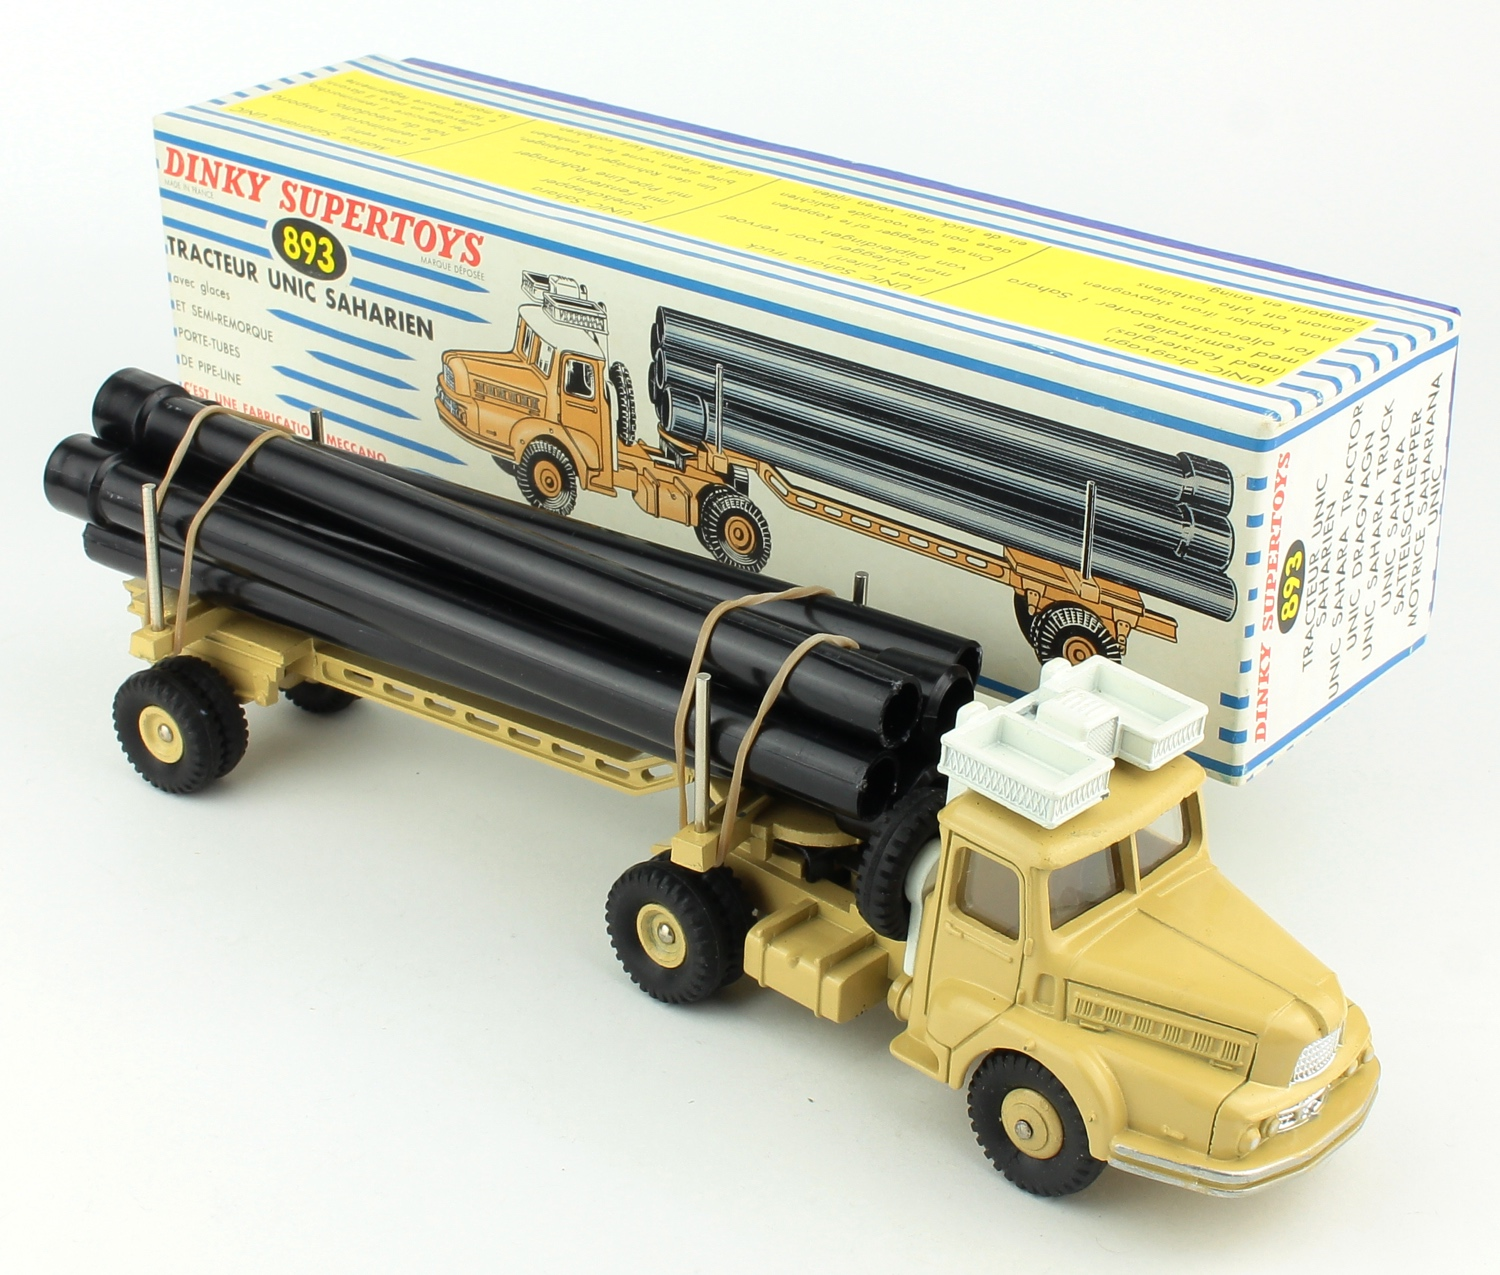 French dinky 893 unic sahara pipe laying truck yy379